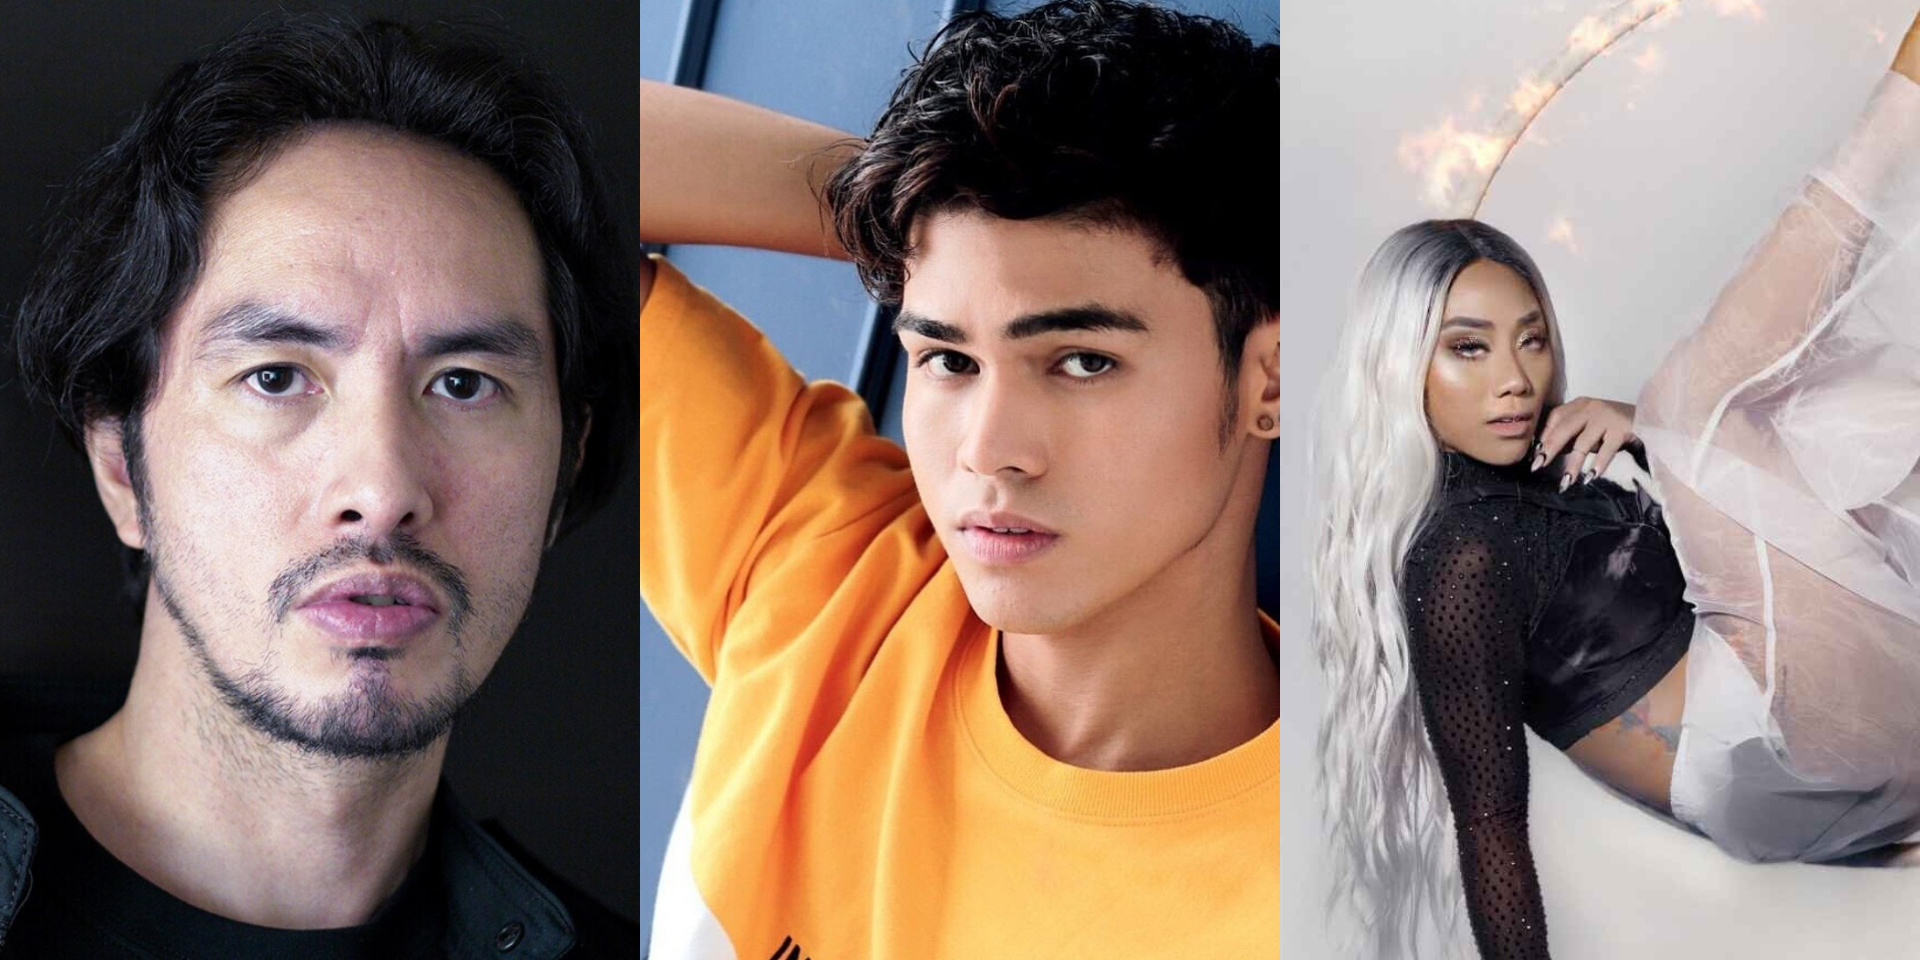 Rico Blanco, Iñigo Pascual, RRILEY and more - here's are a list of musicians to follow on TikTok